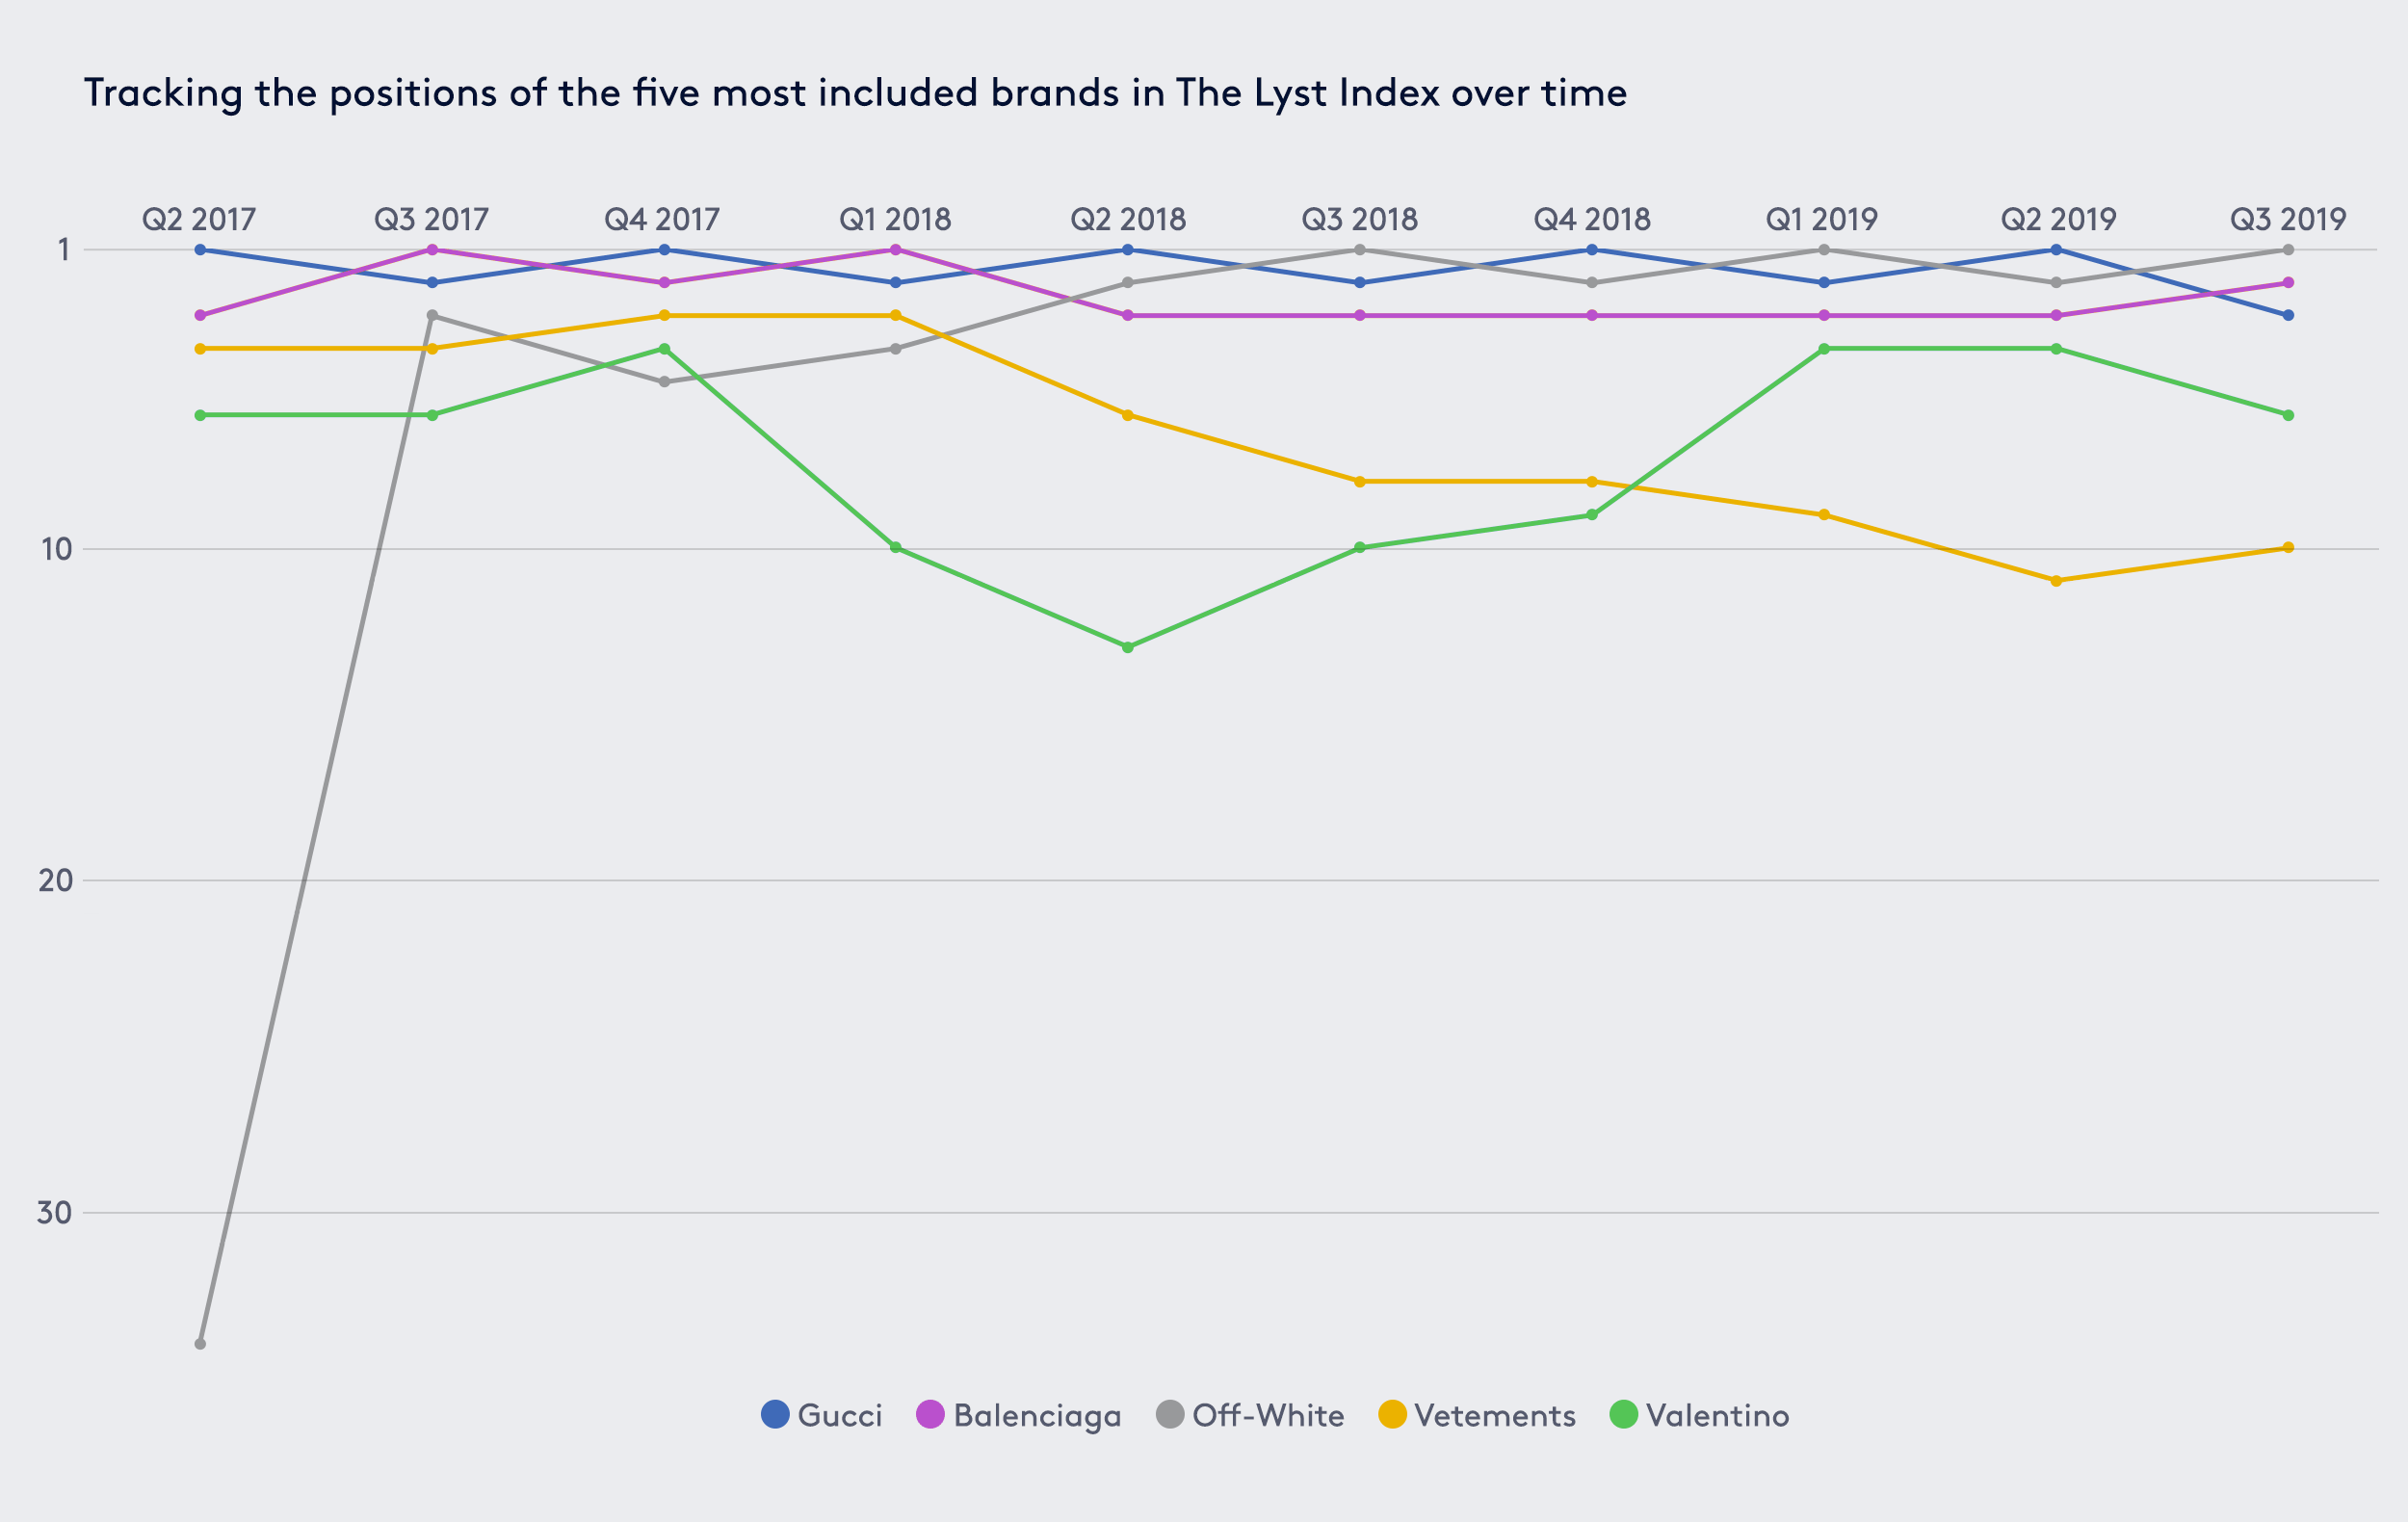 A graph tracking the positions of the five most included brands in The Lyst Index over time